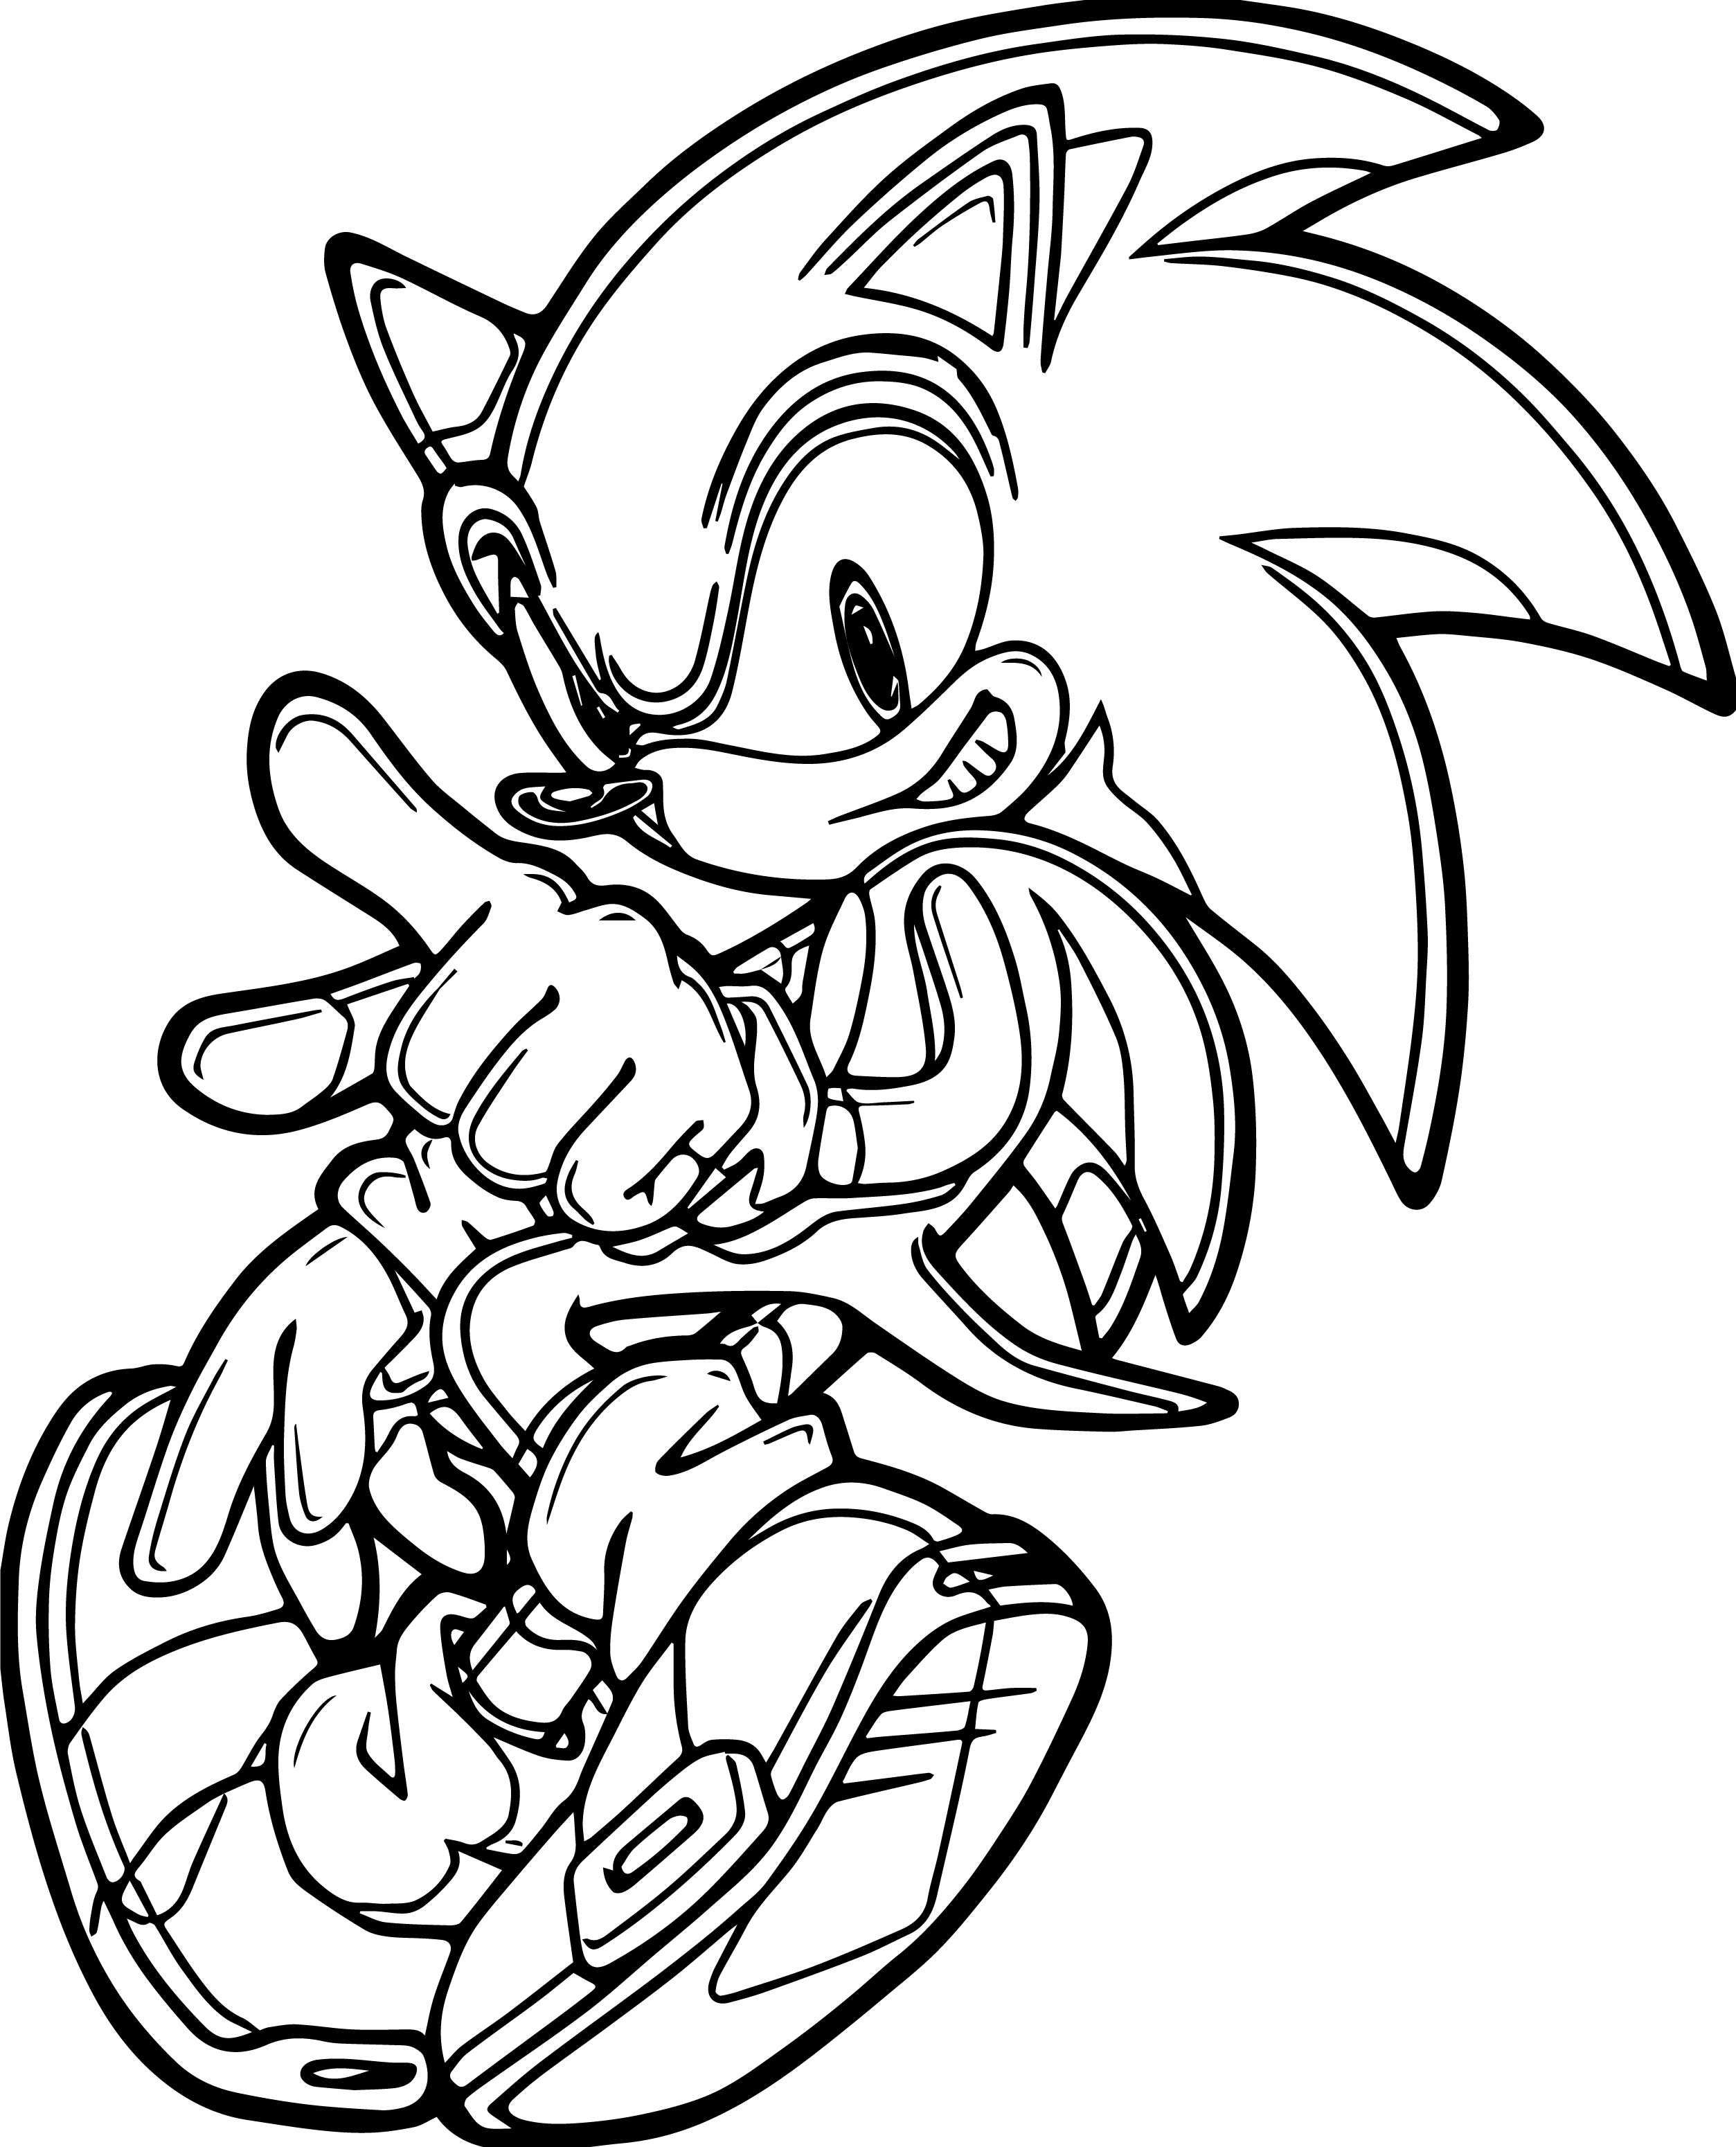 Sonic Coloring Page Sonic The Hedgehog Dance Coloring Page  Wecoloringpage